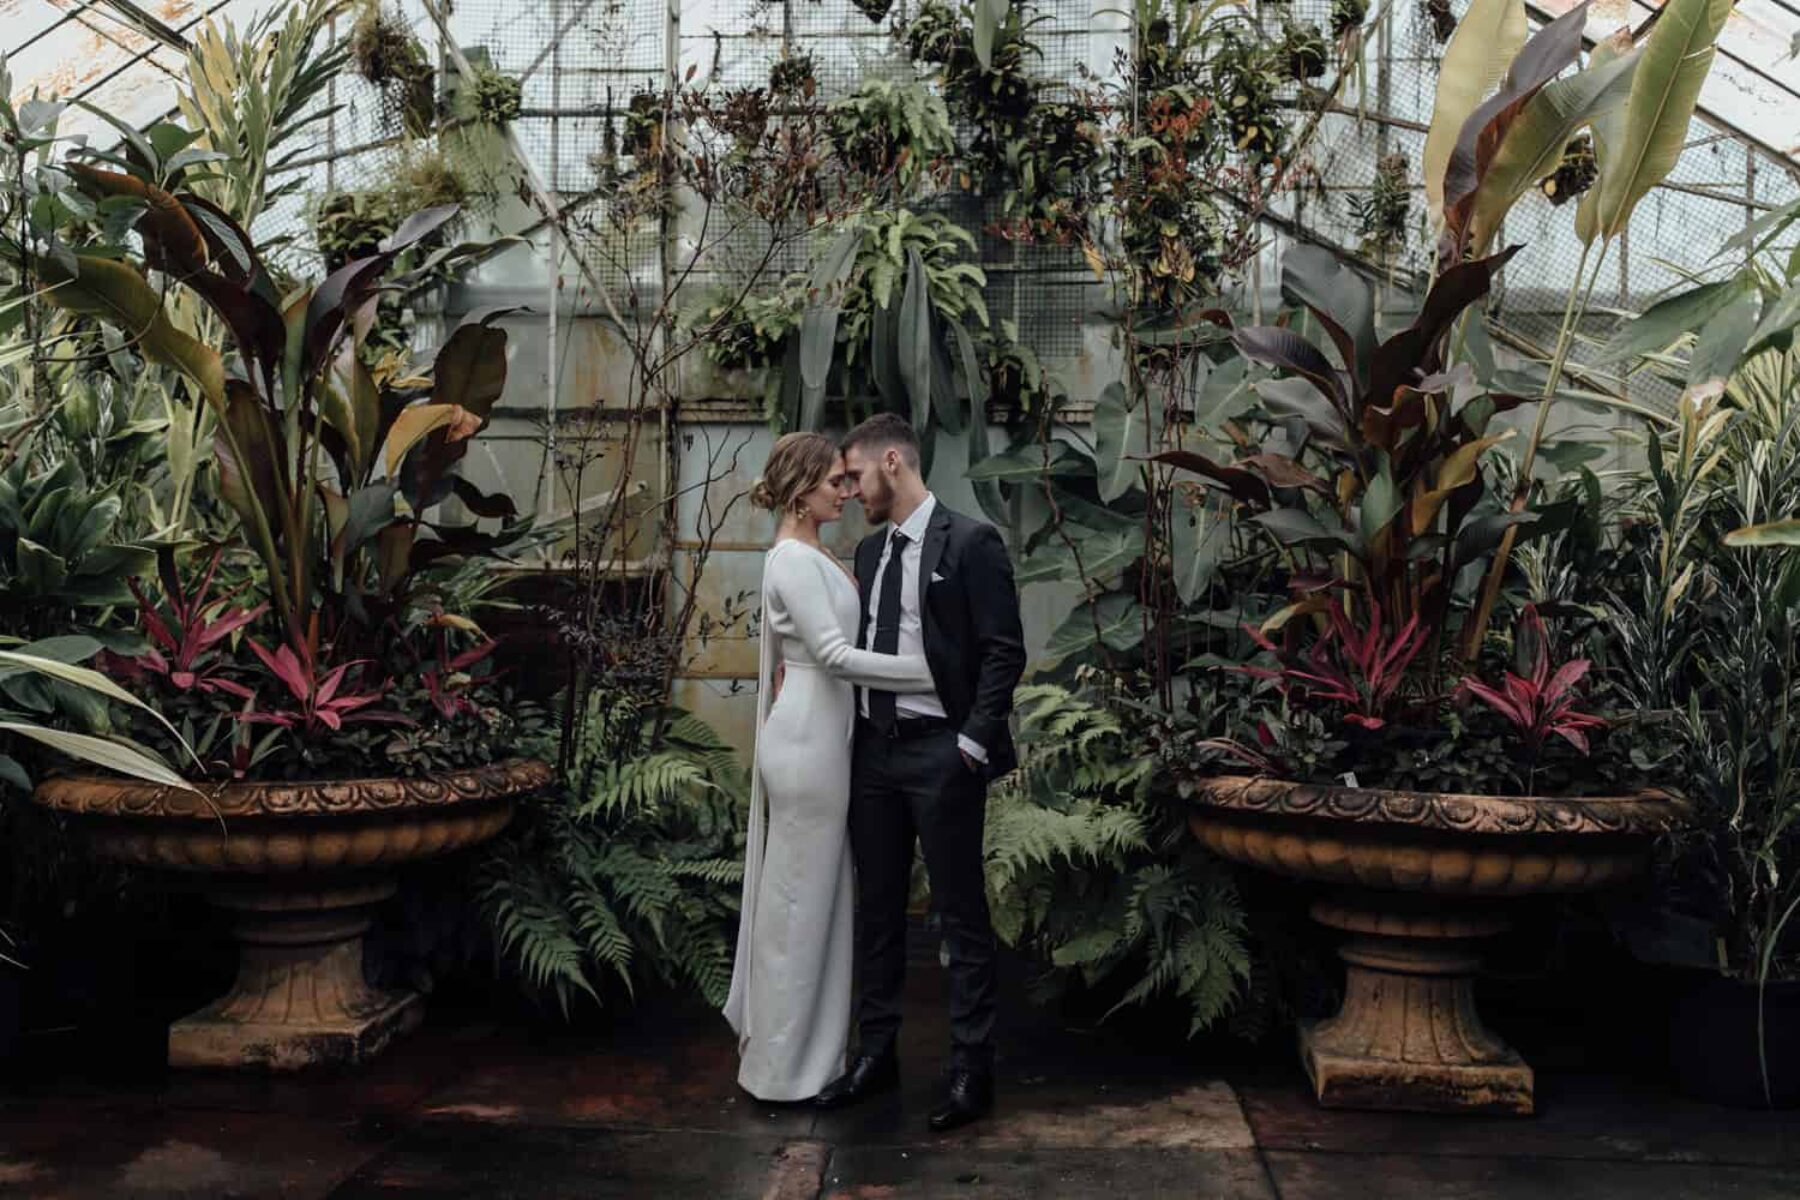 Melbourne glasshouse wedding - Jimmy Raper Photography